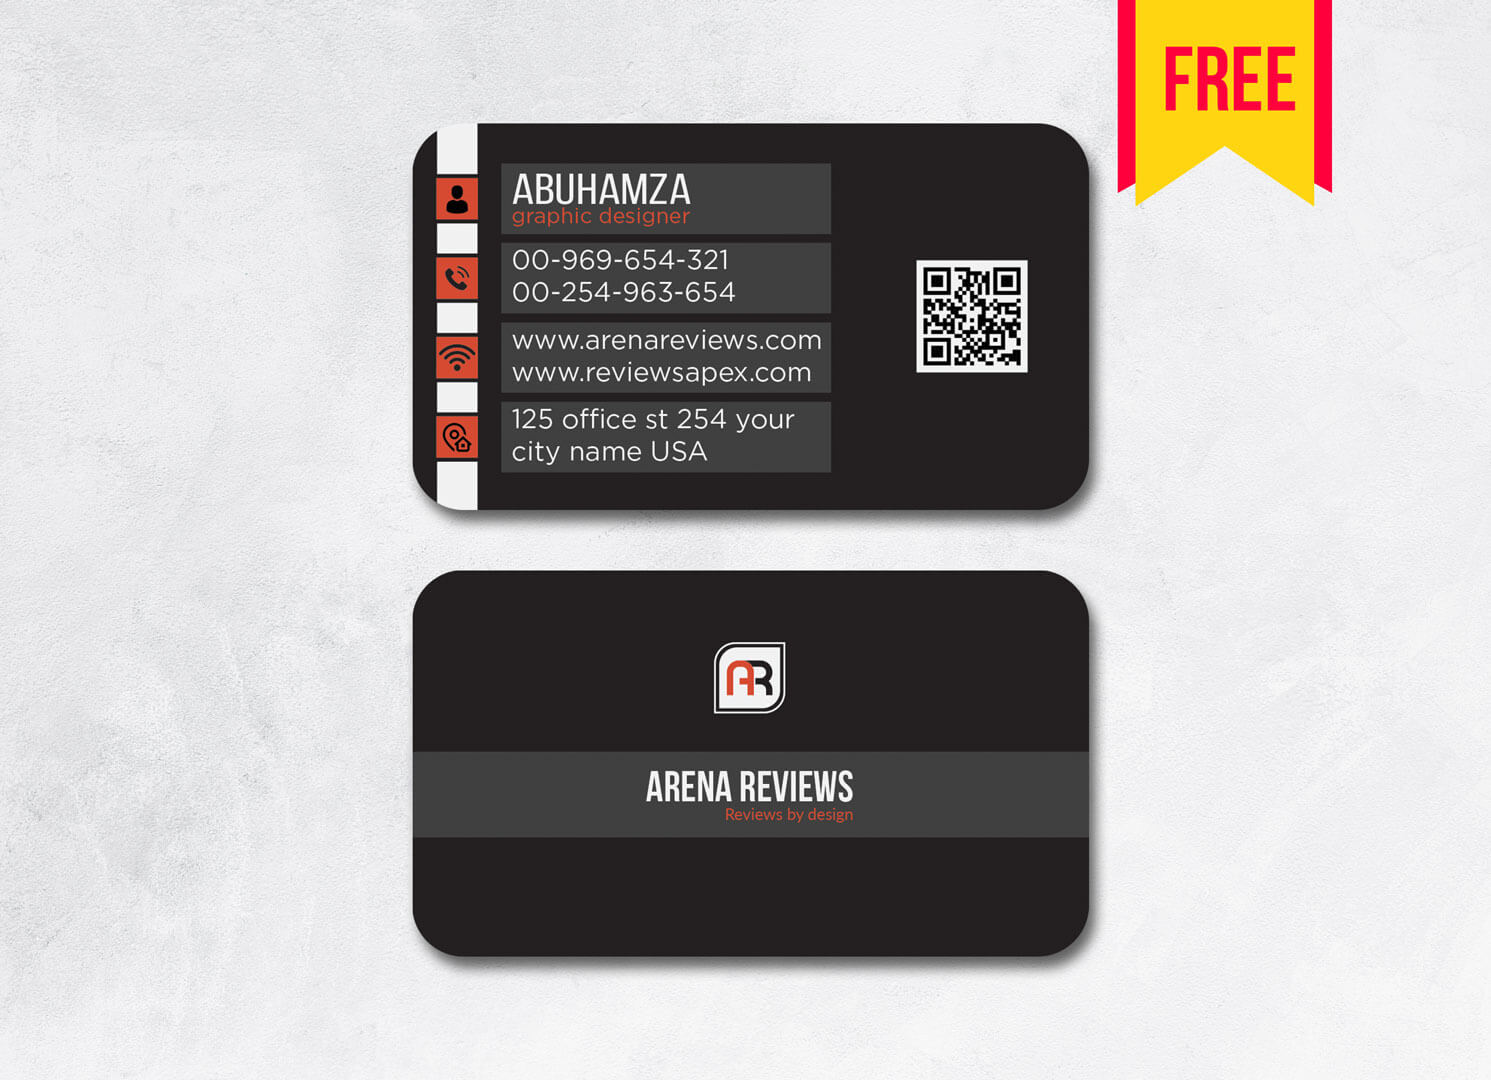 Dark Business Card Template Psd File | Free Download In Name Card Design Template Psd